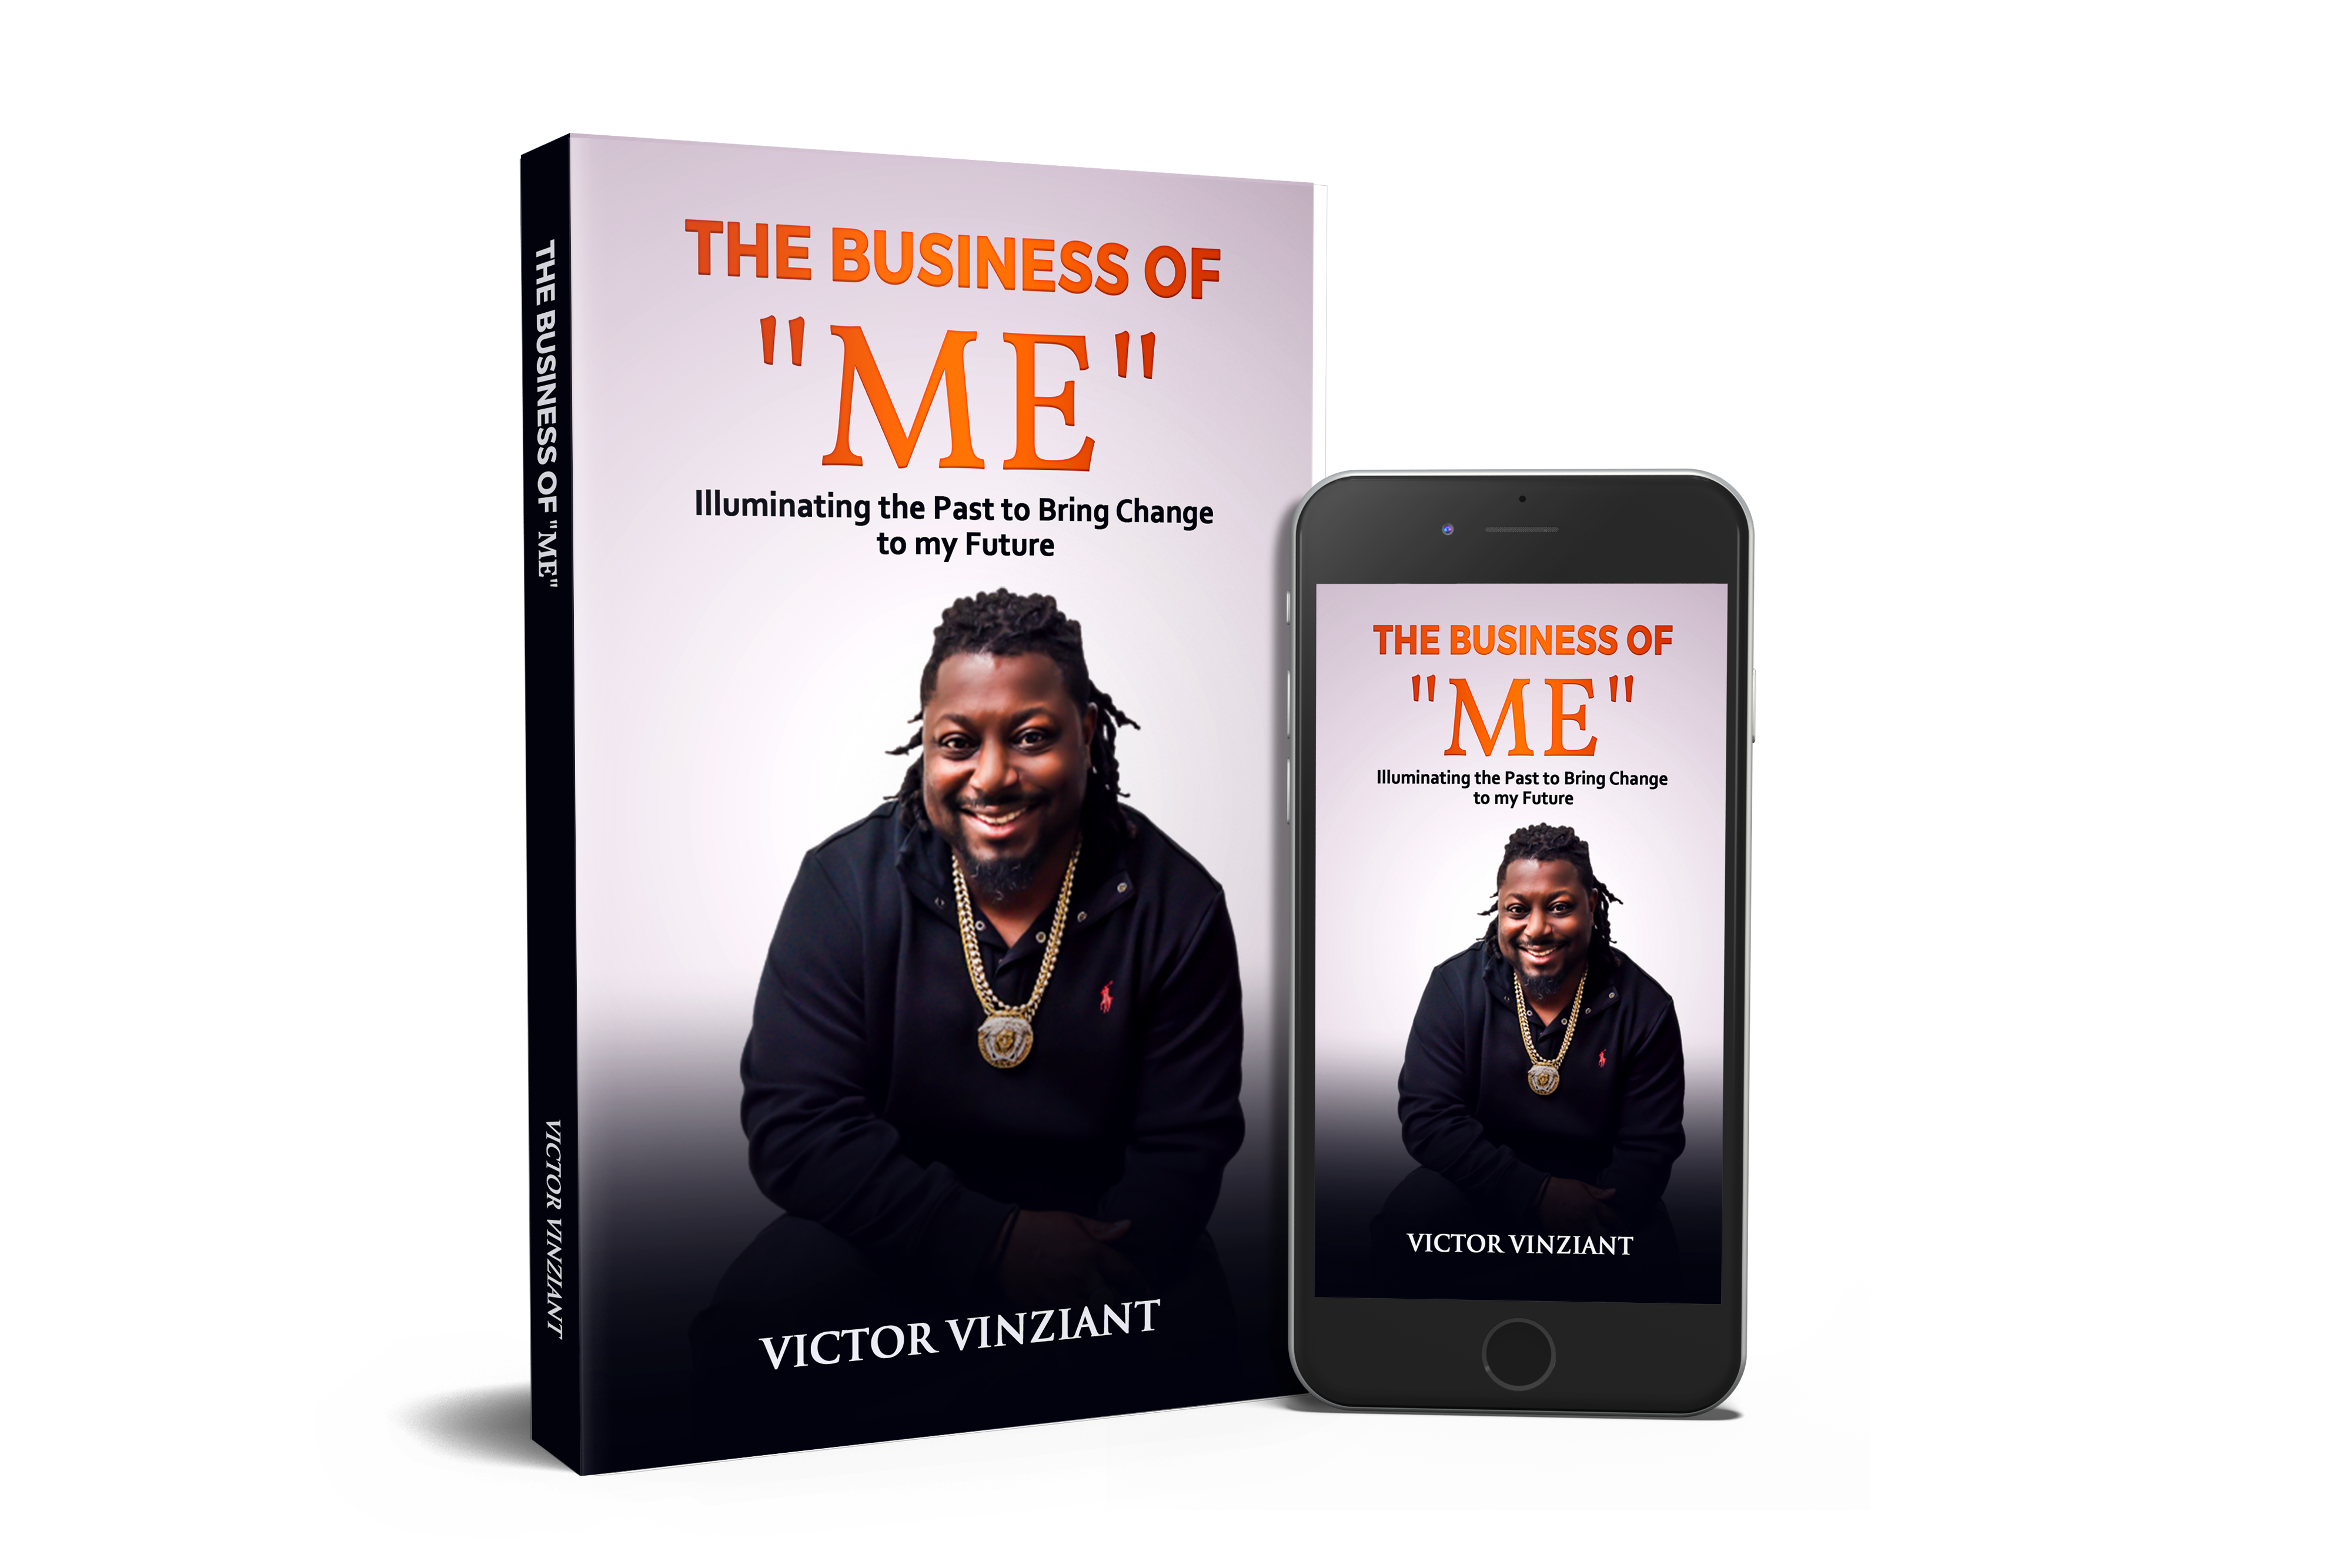 The Business of Me